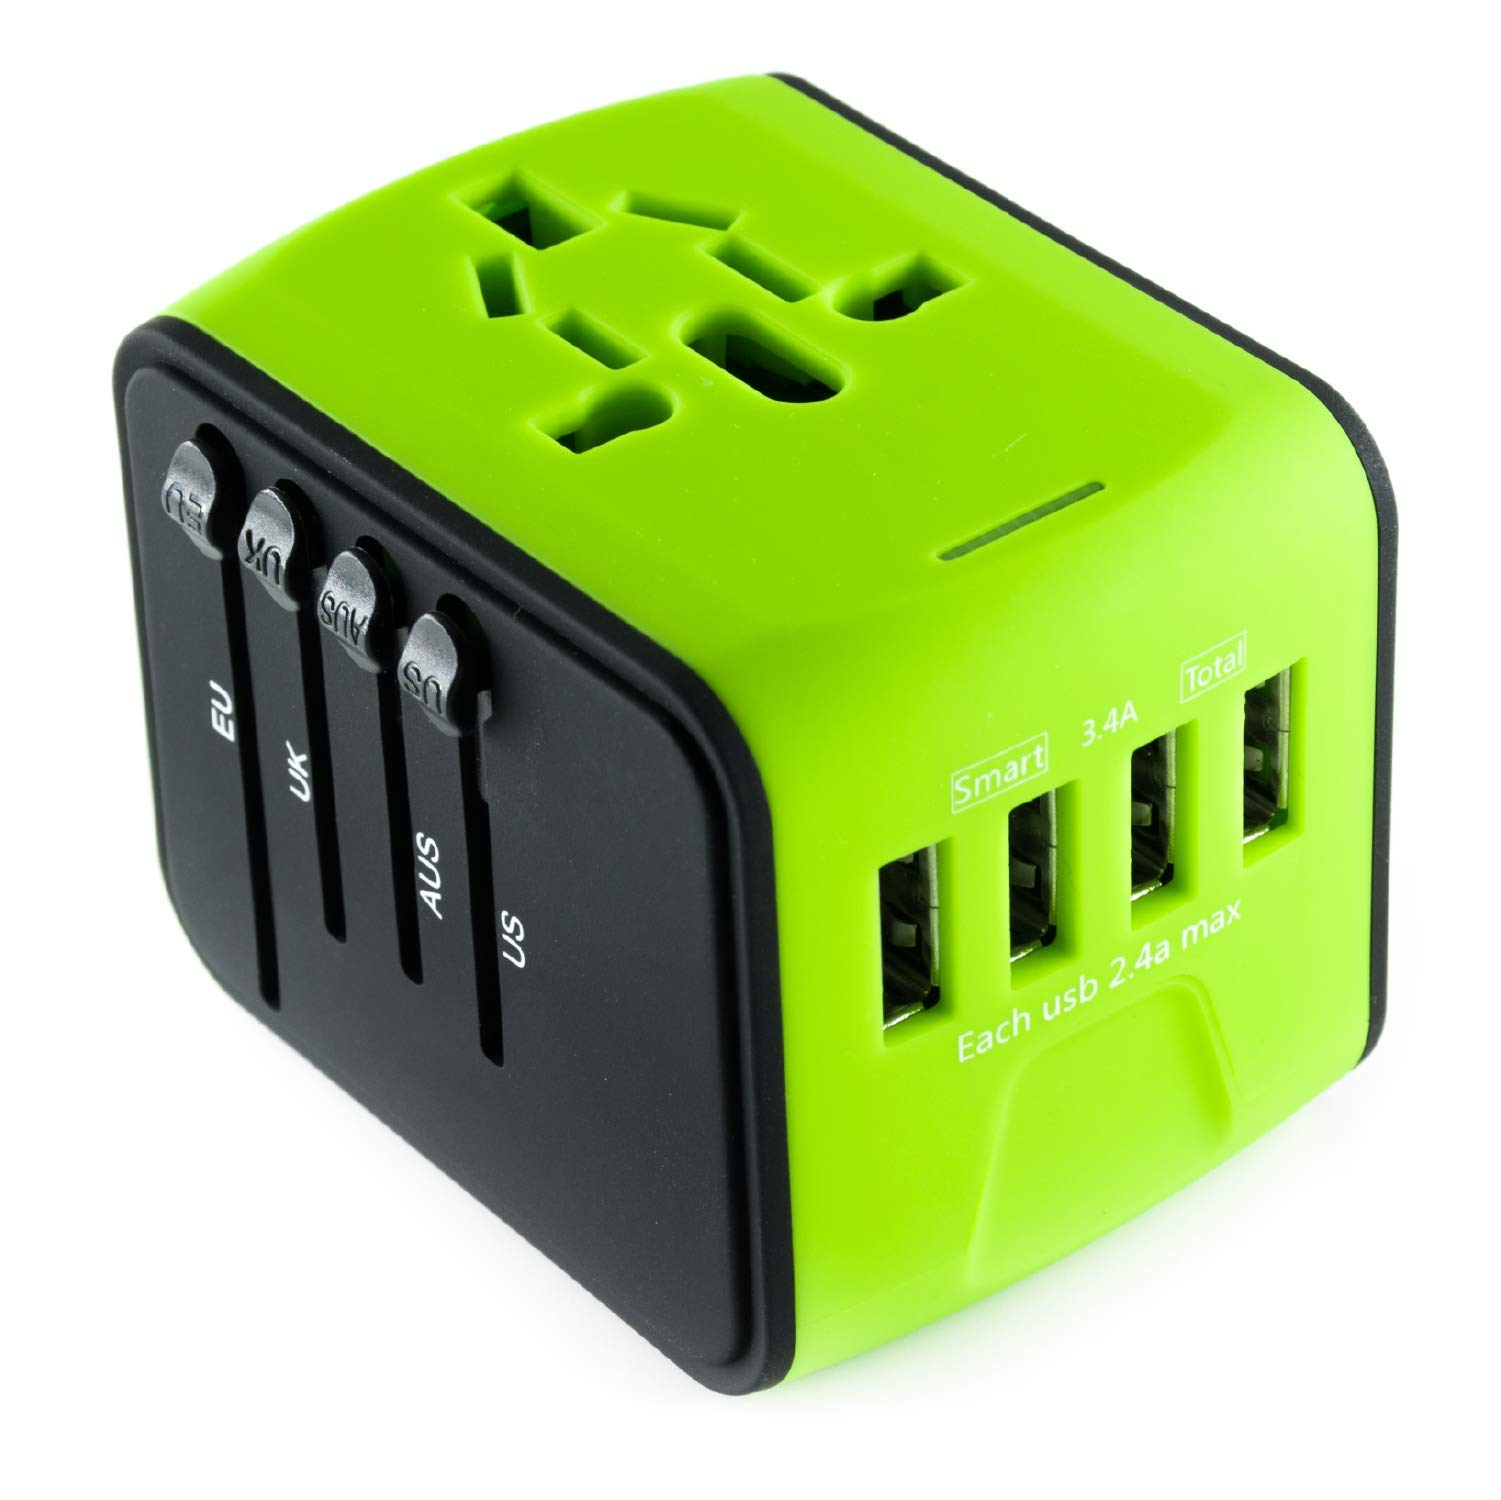 International Travel Adapter Universal Power Adapters Plug Converter Worldwide All in One with 4 USB Ports and AC Socket Perfect European Adaptor for US EU UK AUS Asia Europe Italy American (Green)